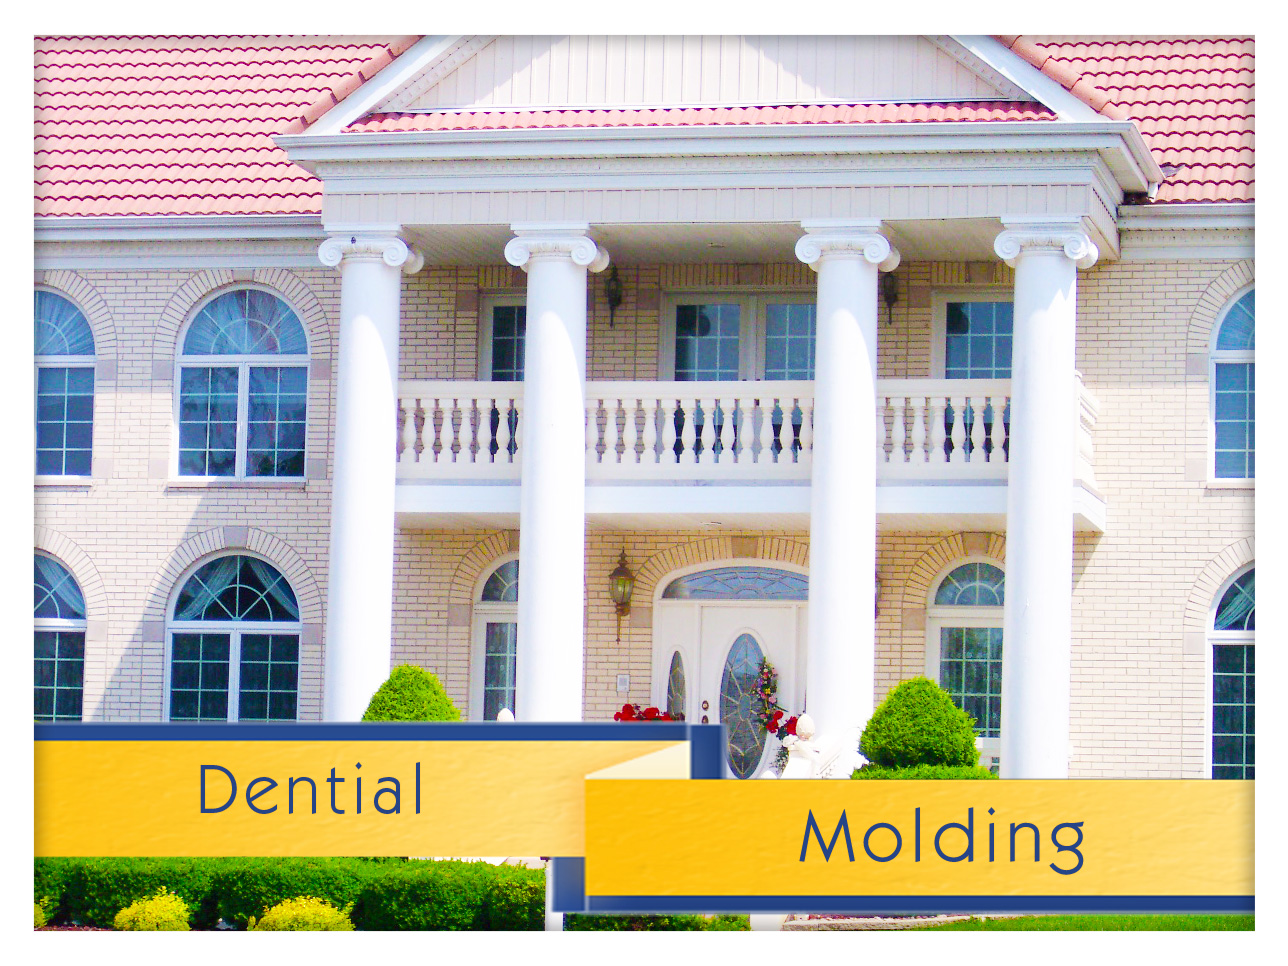 Dential Molding